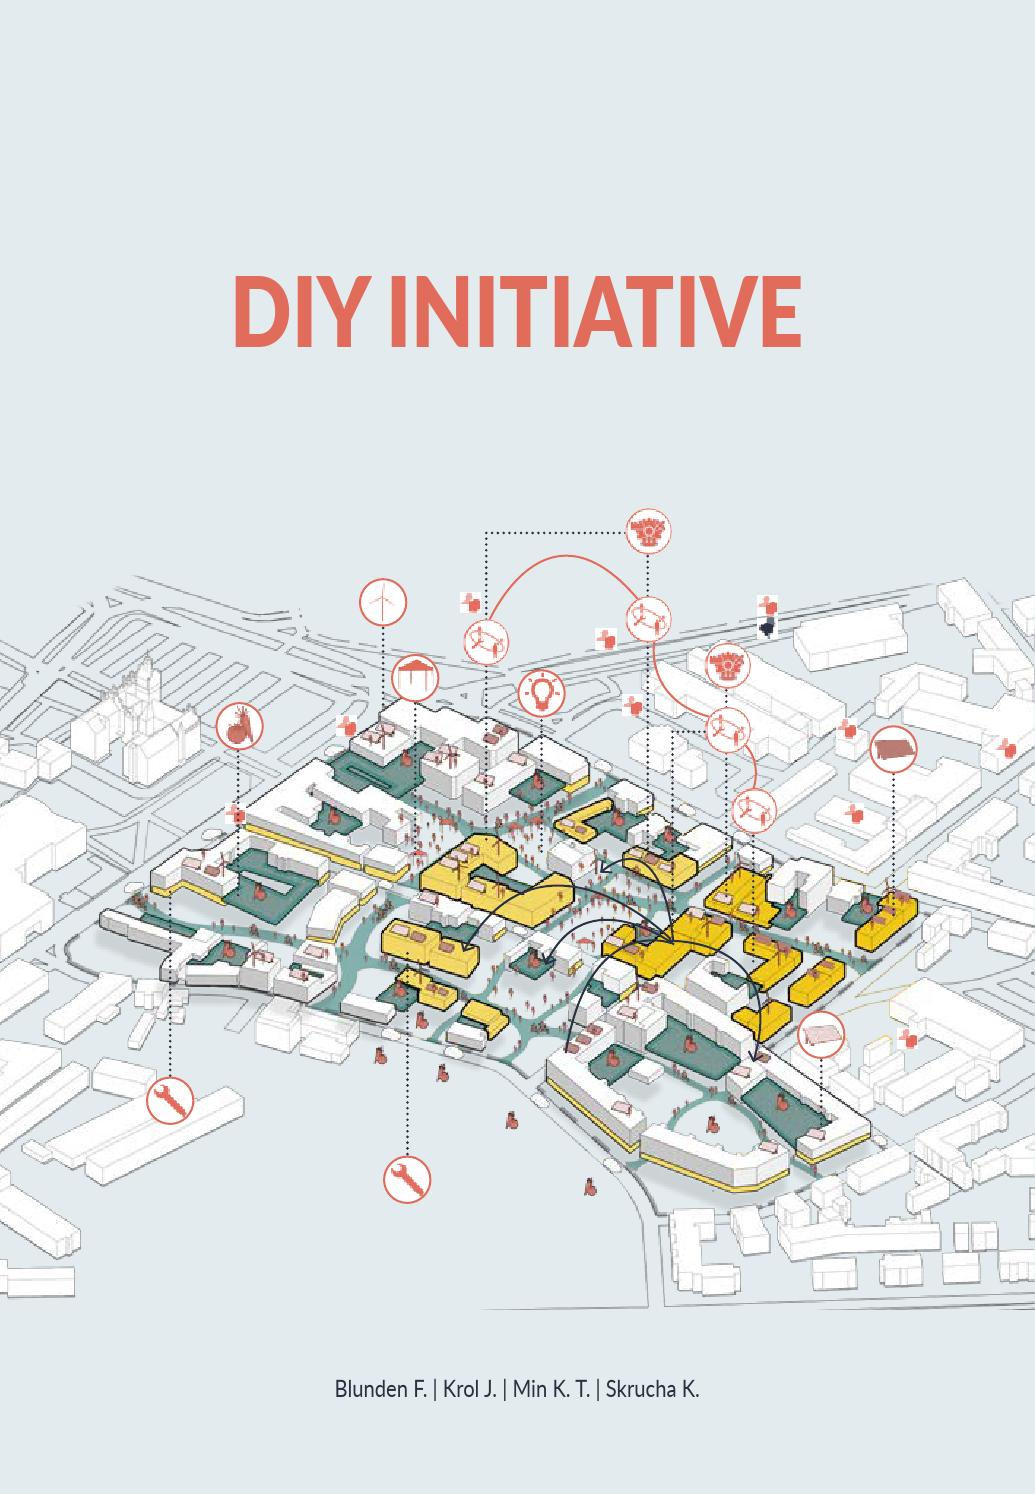 images urban planner in diagram labeled ship diy initiative strategy december 2015 by plymouth